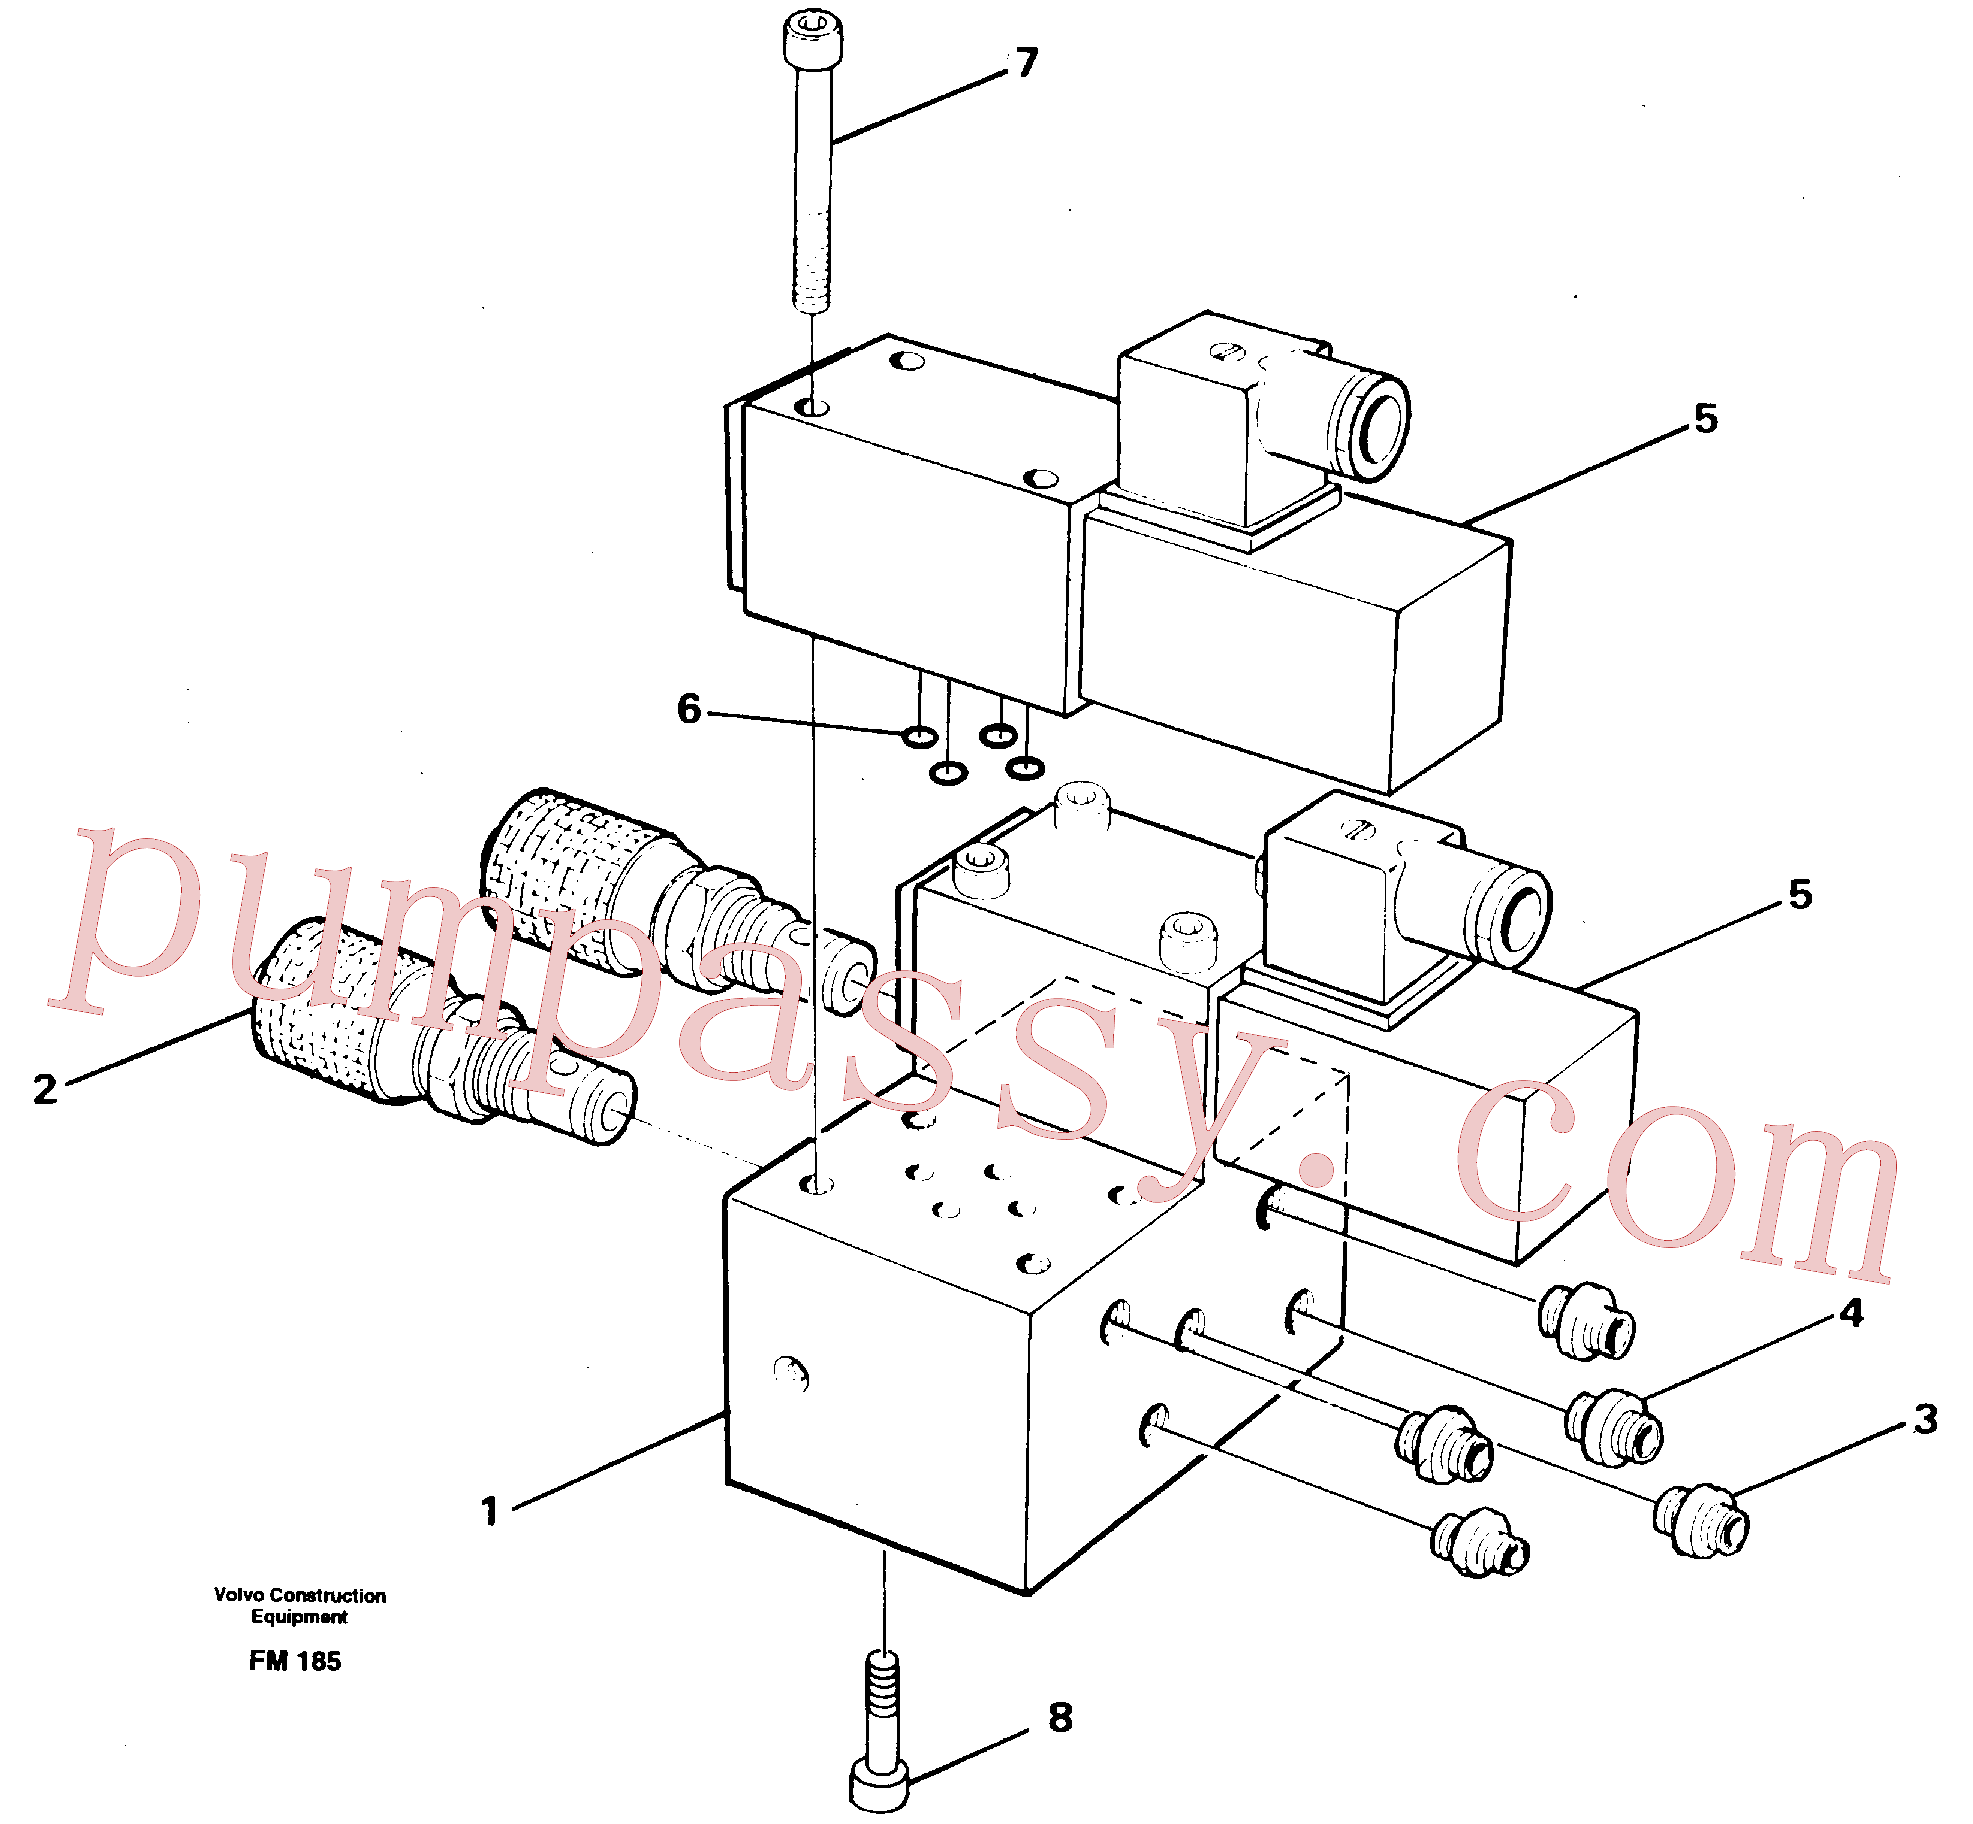 VOE14247352 for Volvo Control block for end position damp(FM185 assembly)